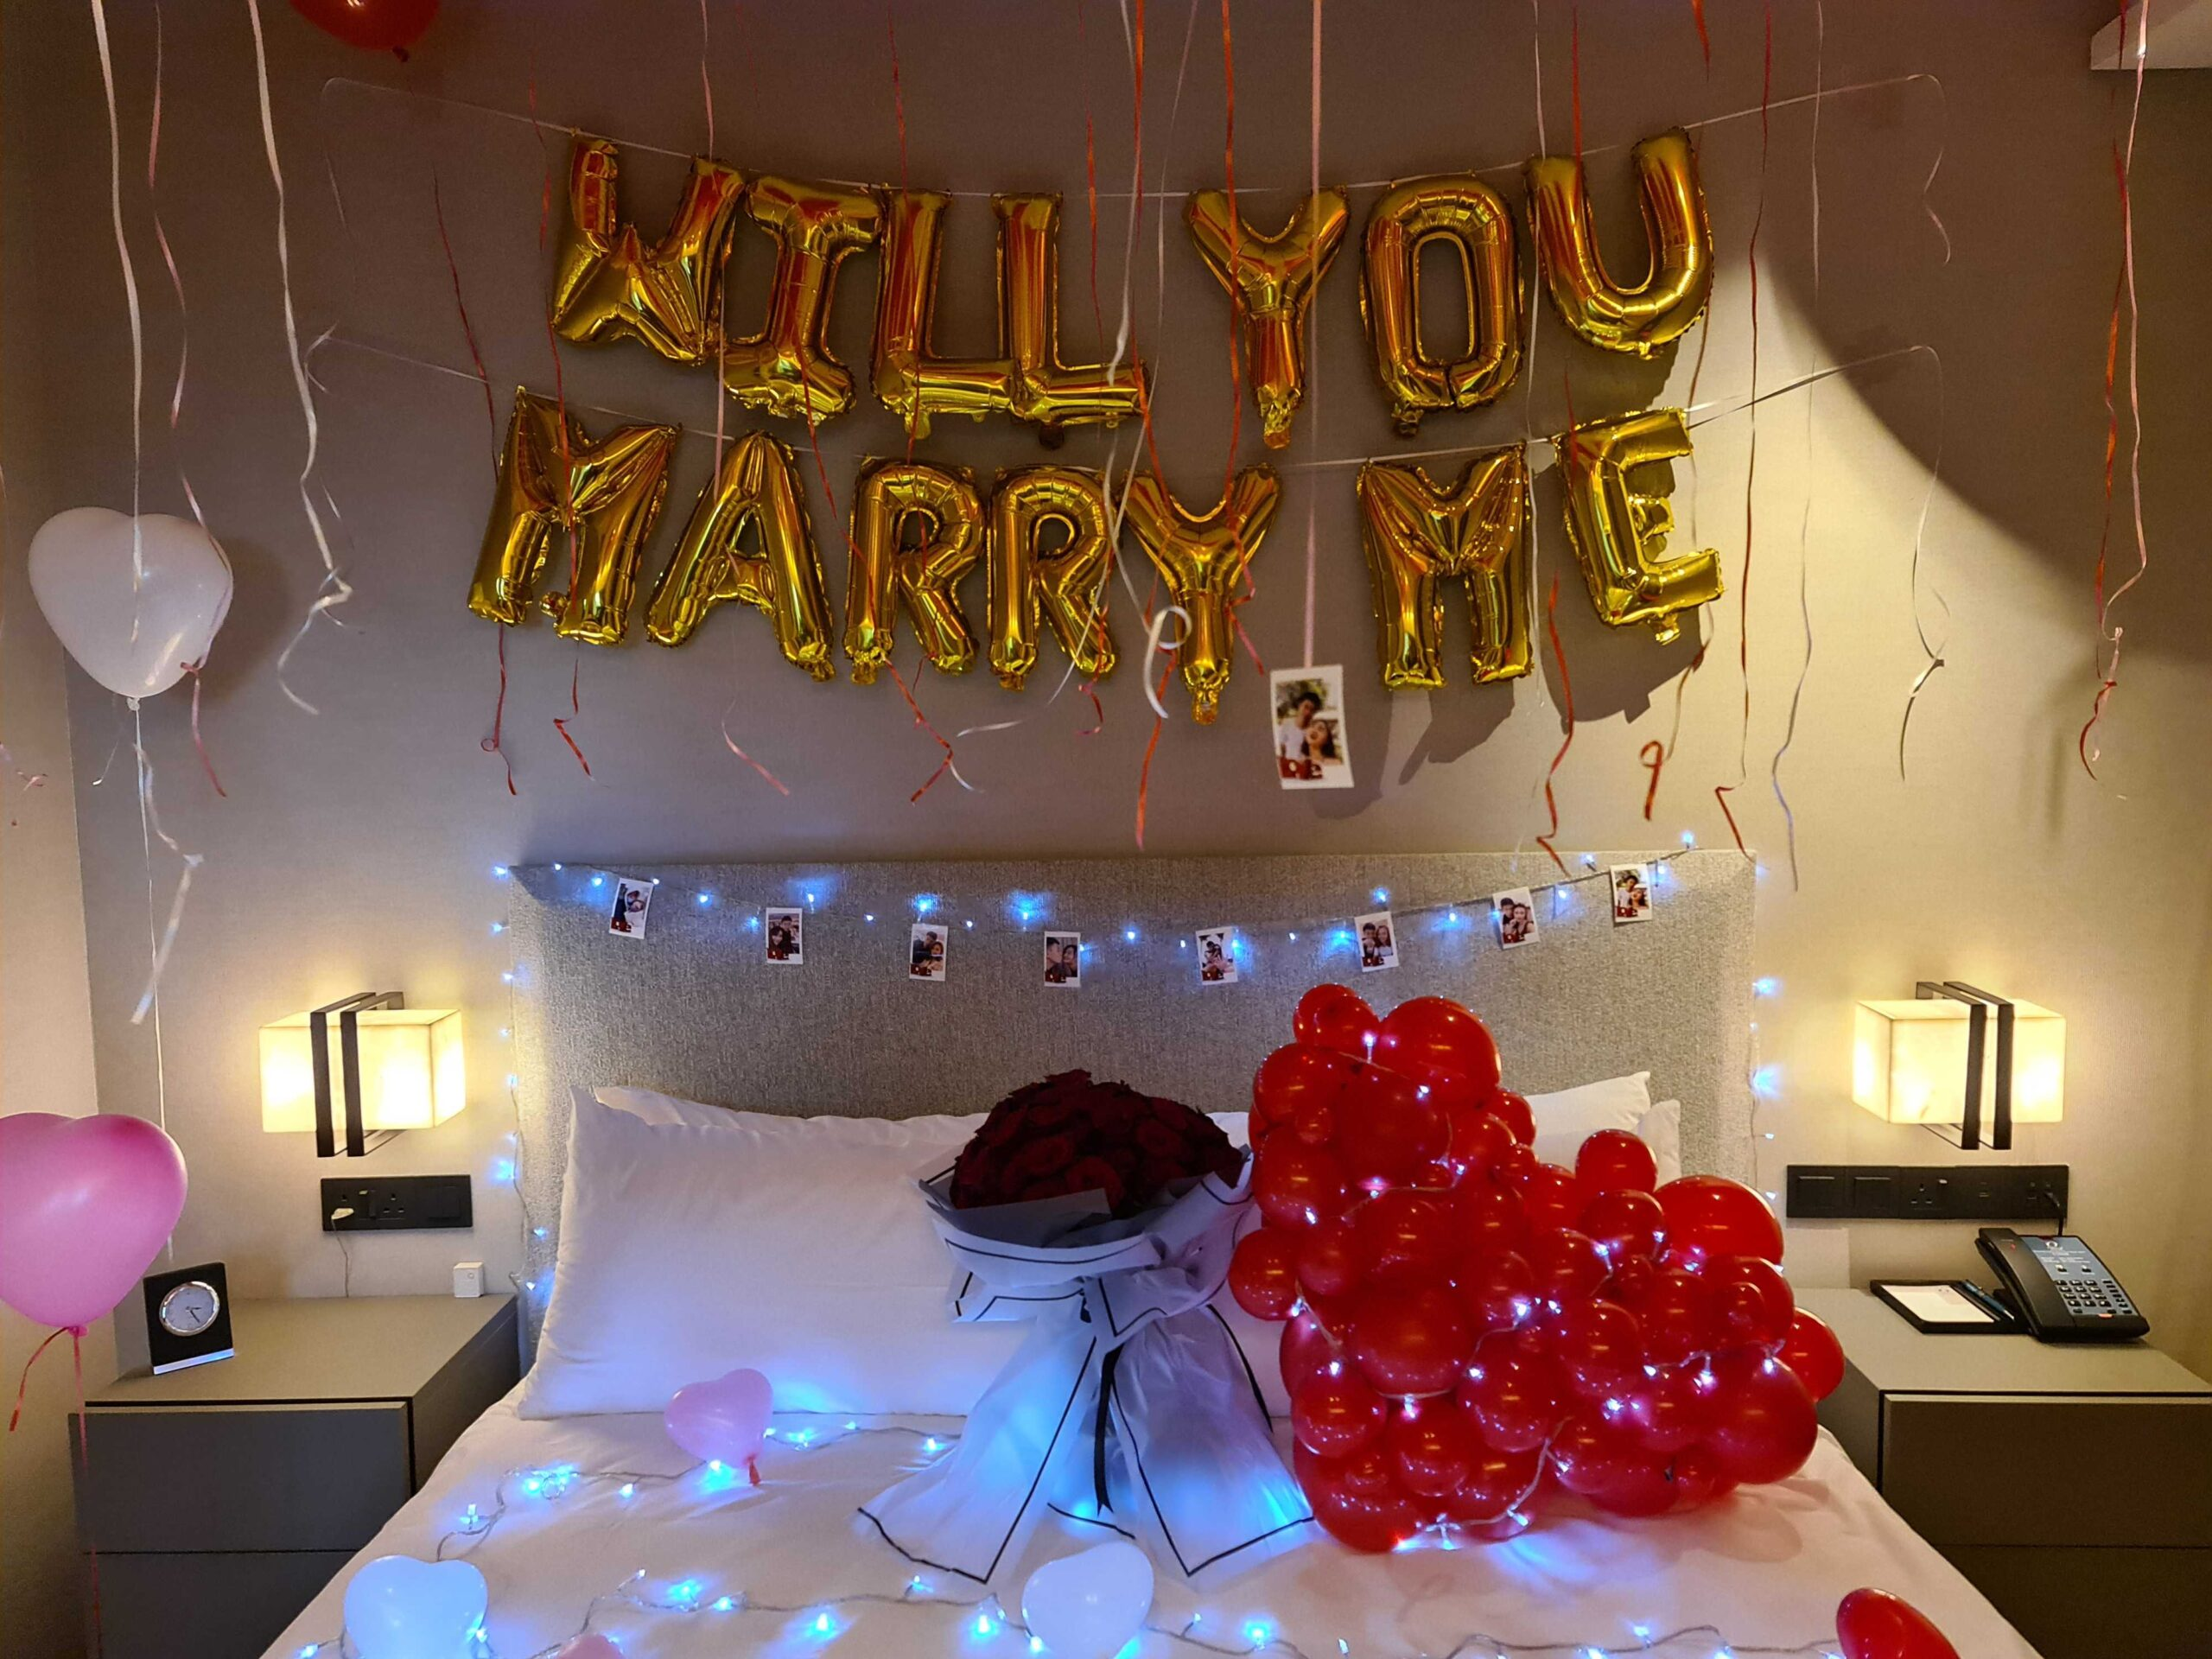 , Wedding Proposal Balloon Decorations For Hotel Room Balloon Decorations Styling, Singapore Balloon Decoration Services - Balloon Workshop and Balloon Sculpting